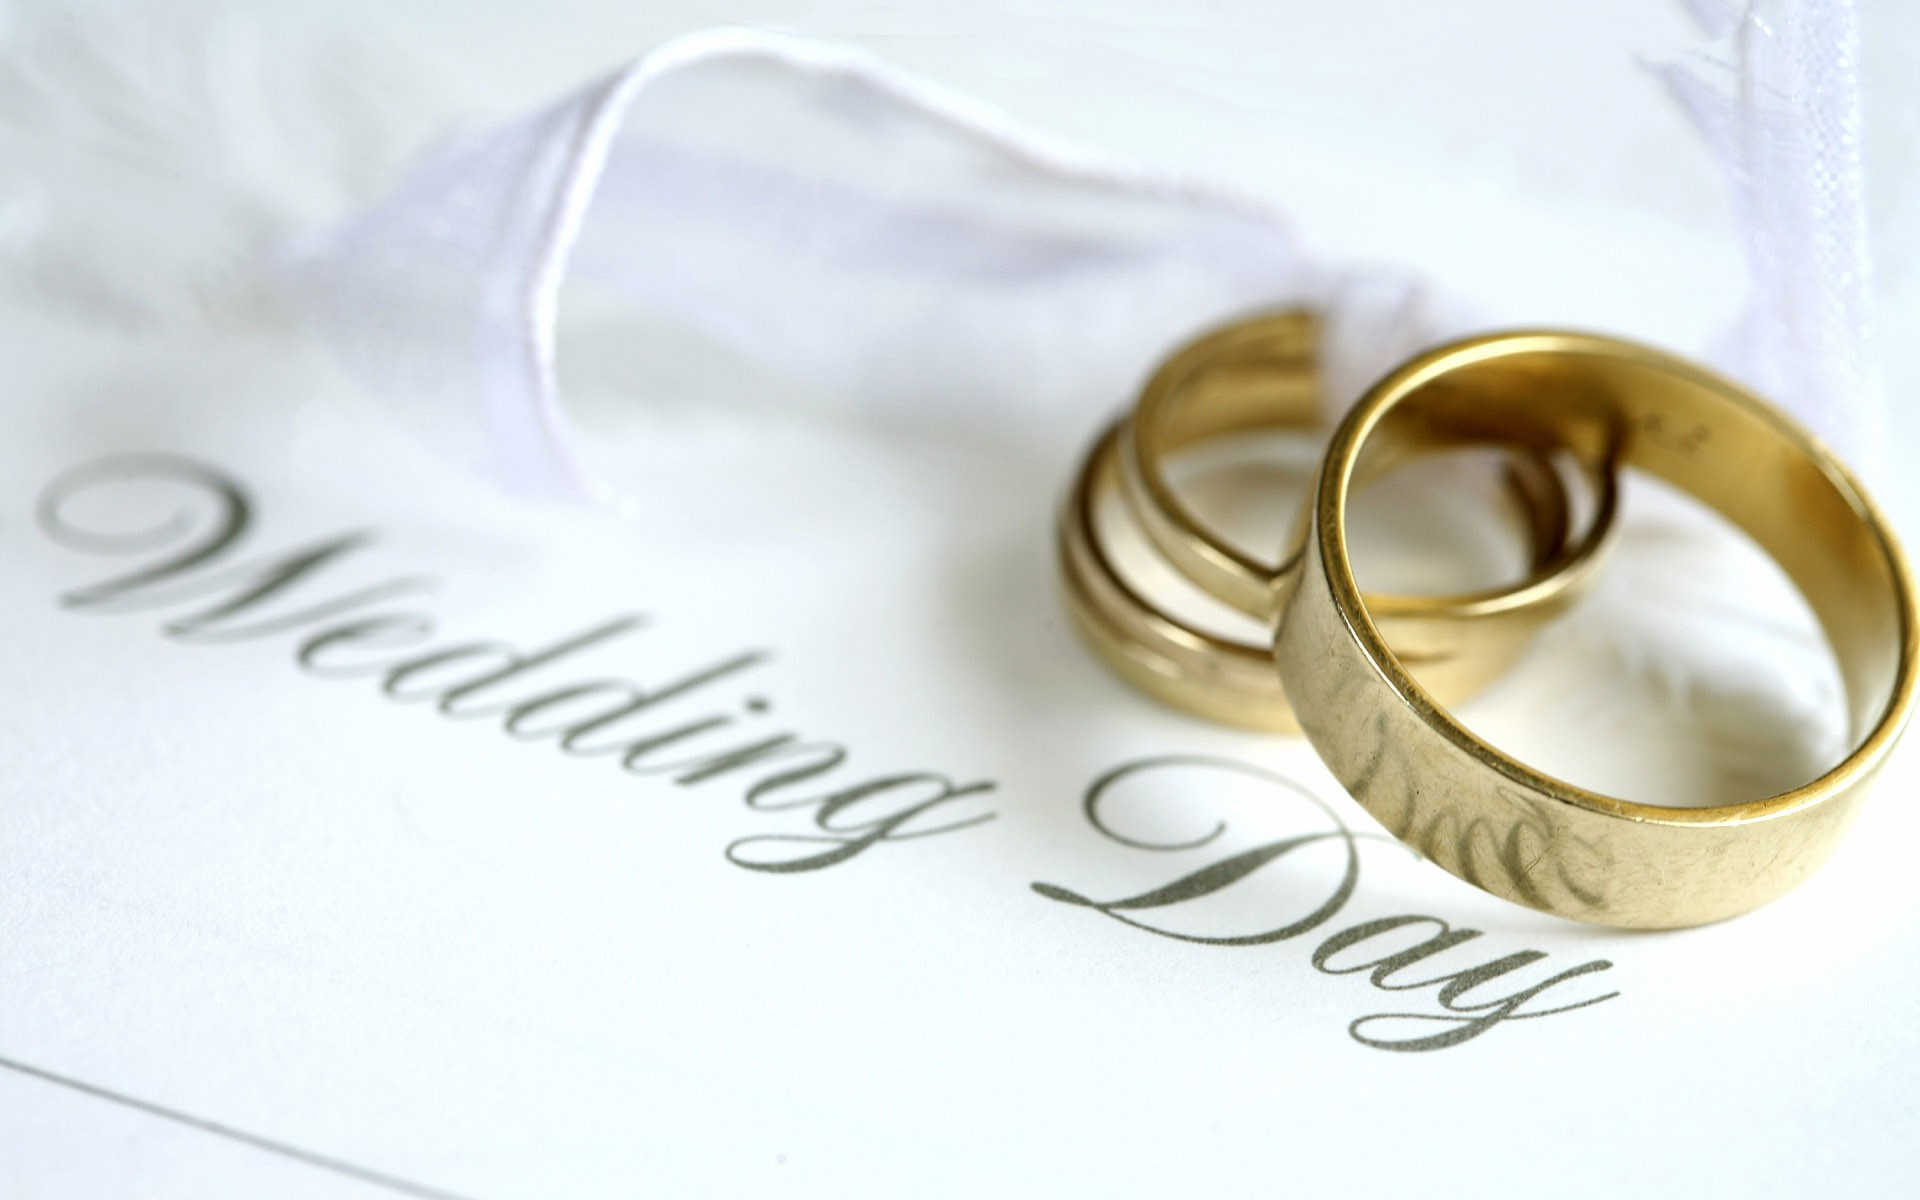 Wallpapers for Desktop with background, cat, marriage, rings, wedding, wallpaper, scenery, language